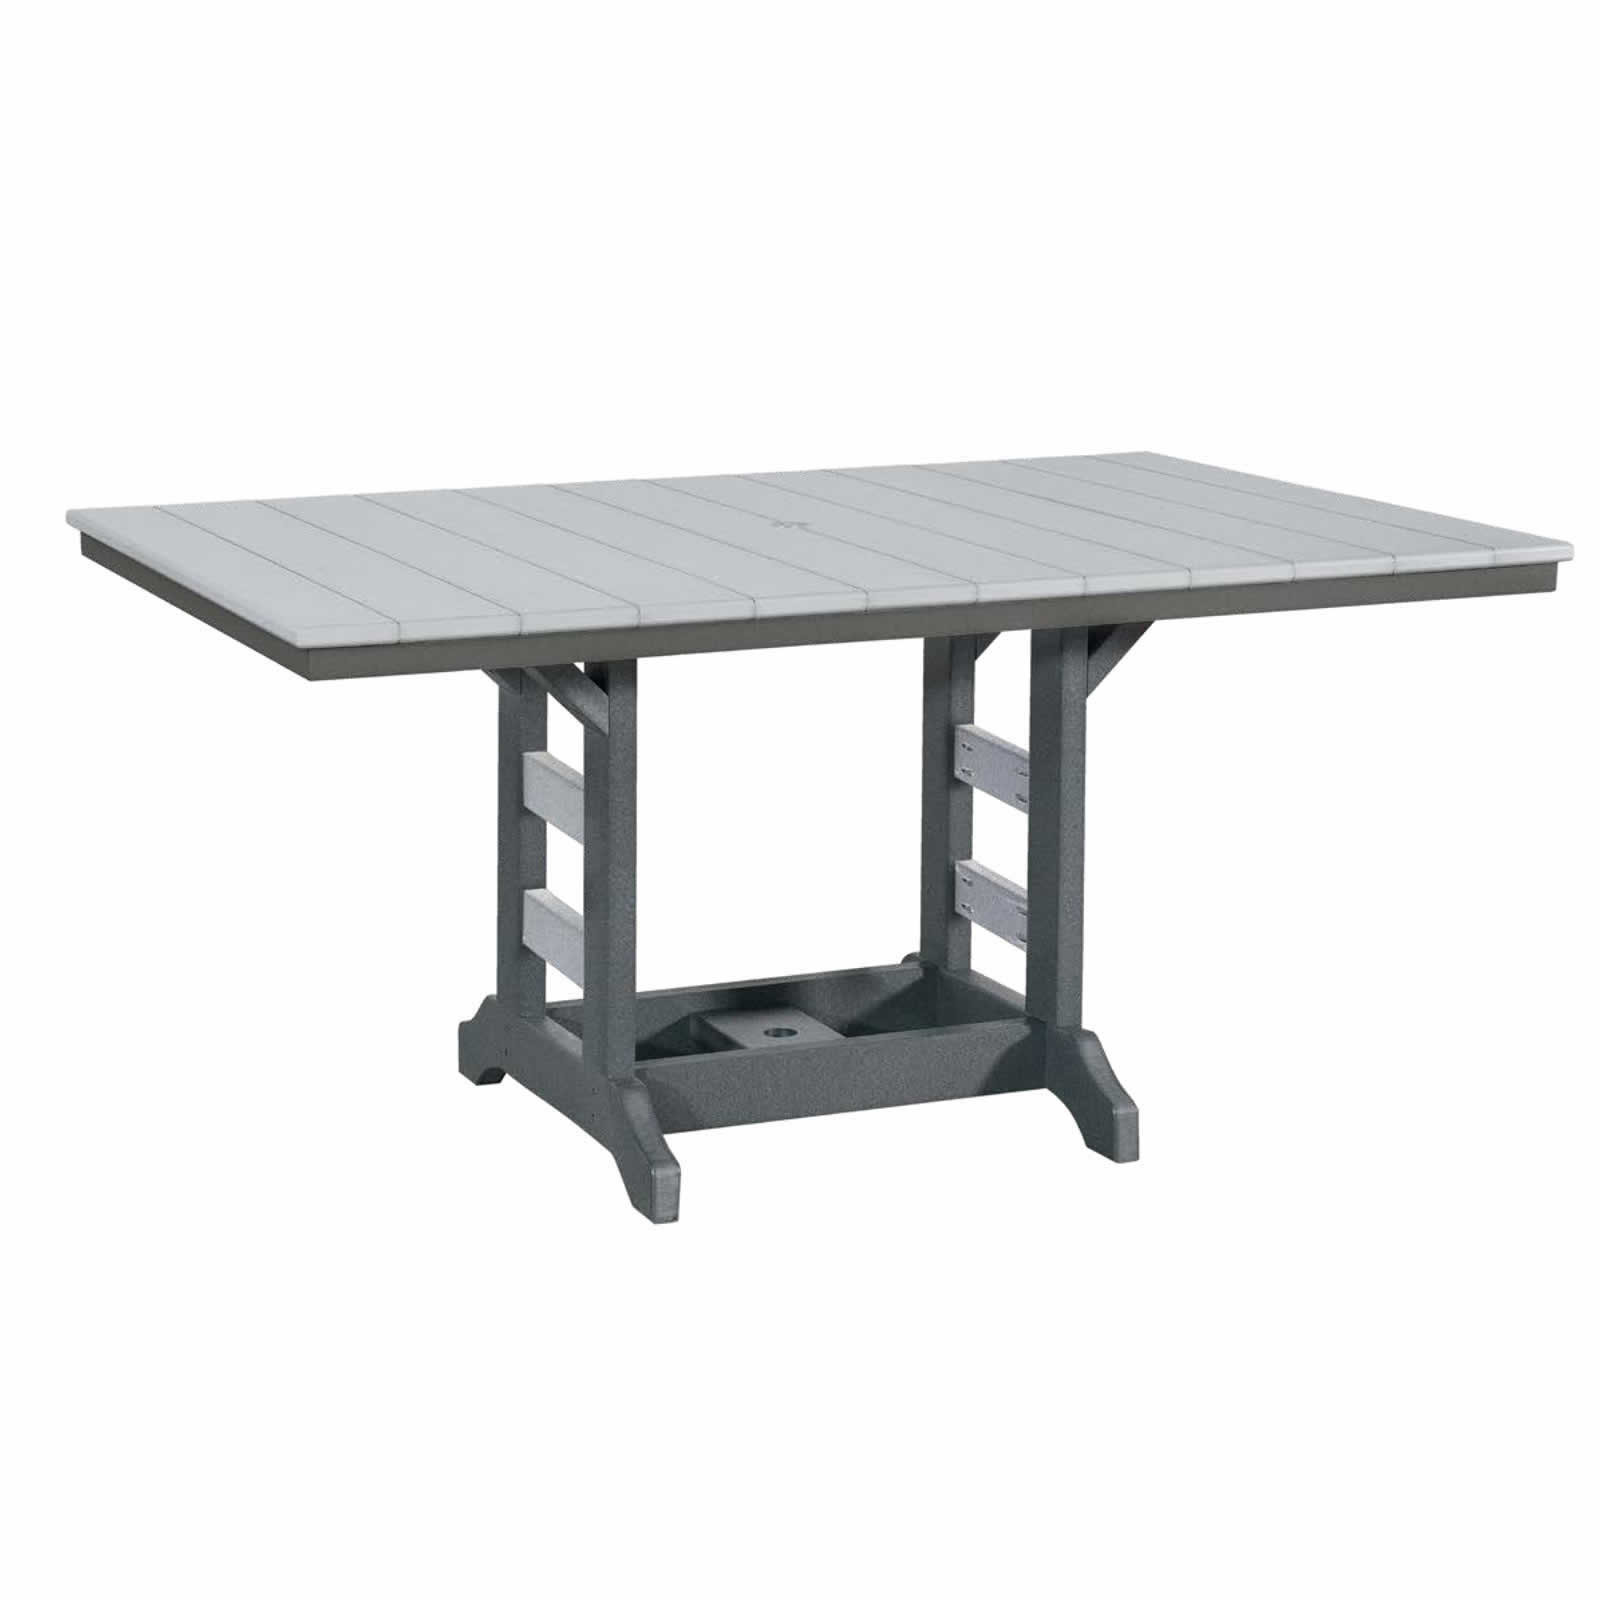 Indiana Amish Poly 42in x 64in Rectangle Dining Table